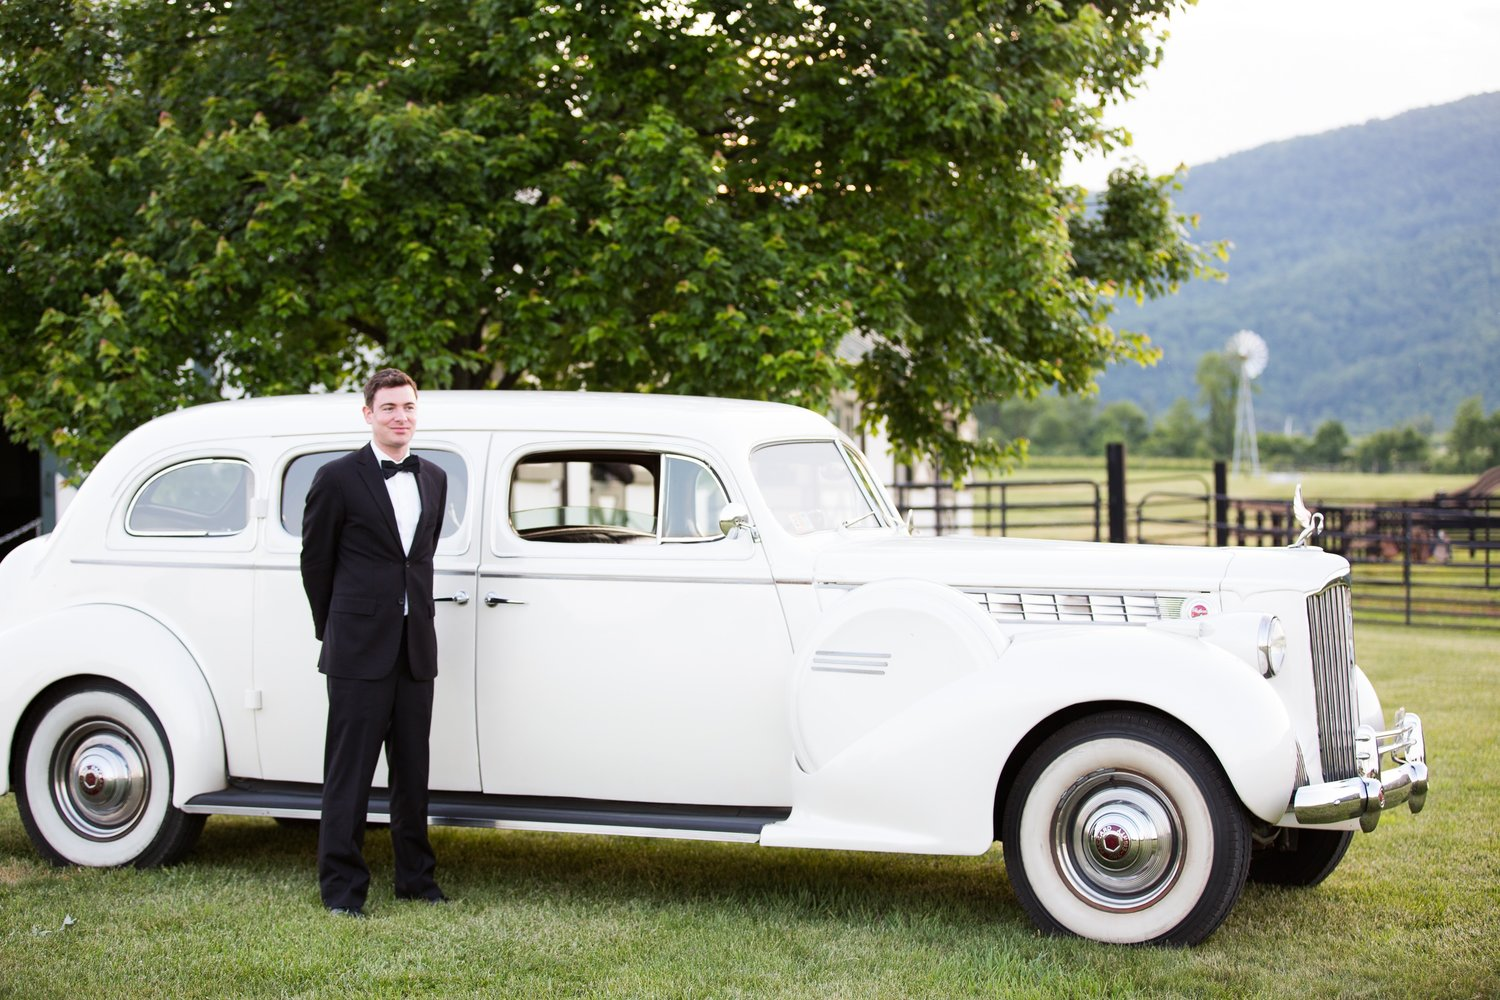 Get Away Cars Reserve Charlottesville Wedding Guest and Bridal Party ...